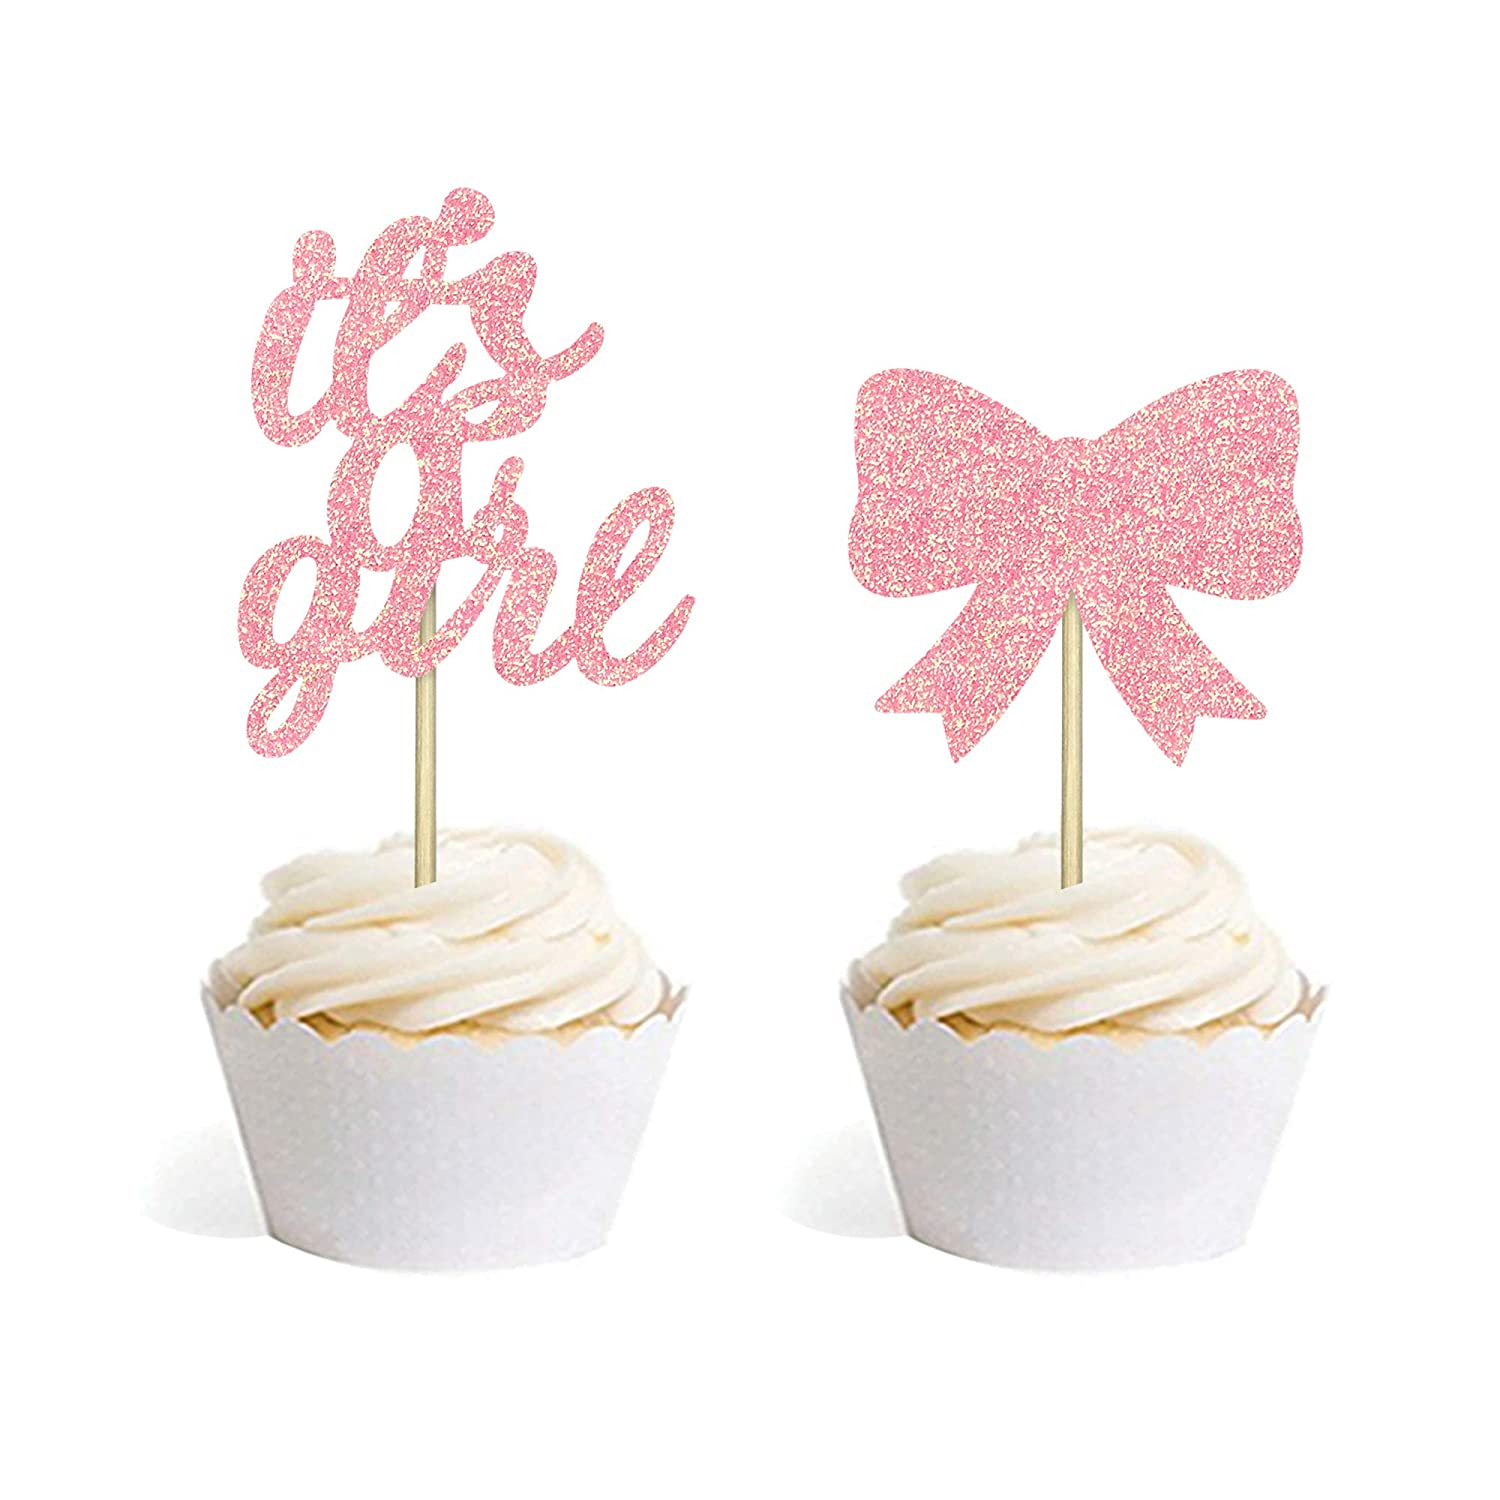 24 PCS Baby Shower Cake Cupcake Party for Toppers Picks A surprise price is realized Decorati Max 88% OFF